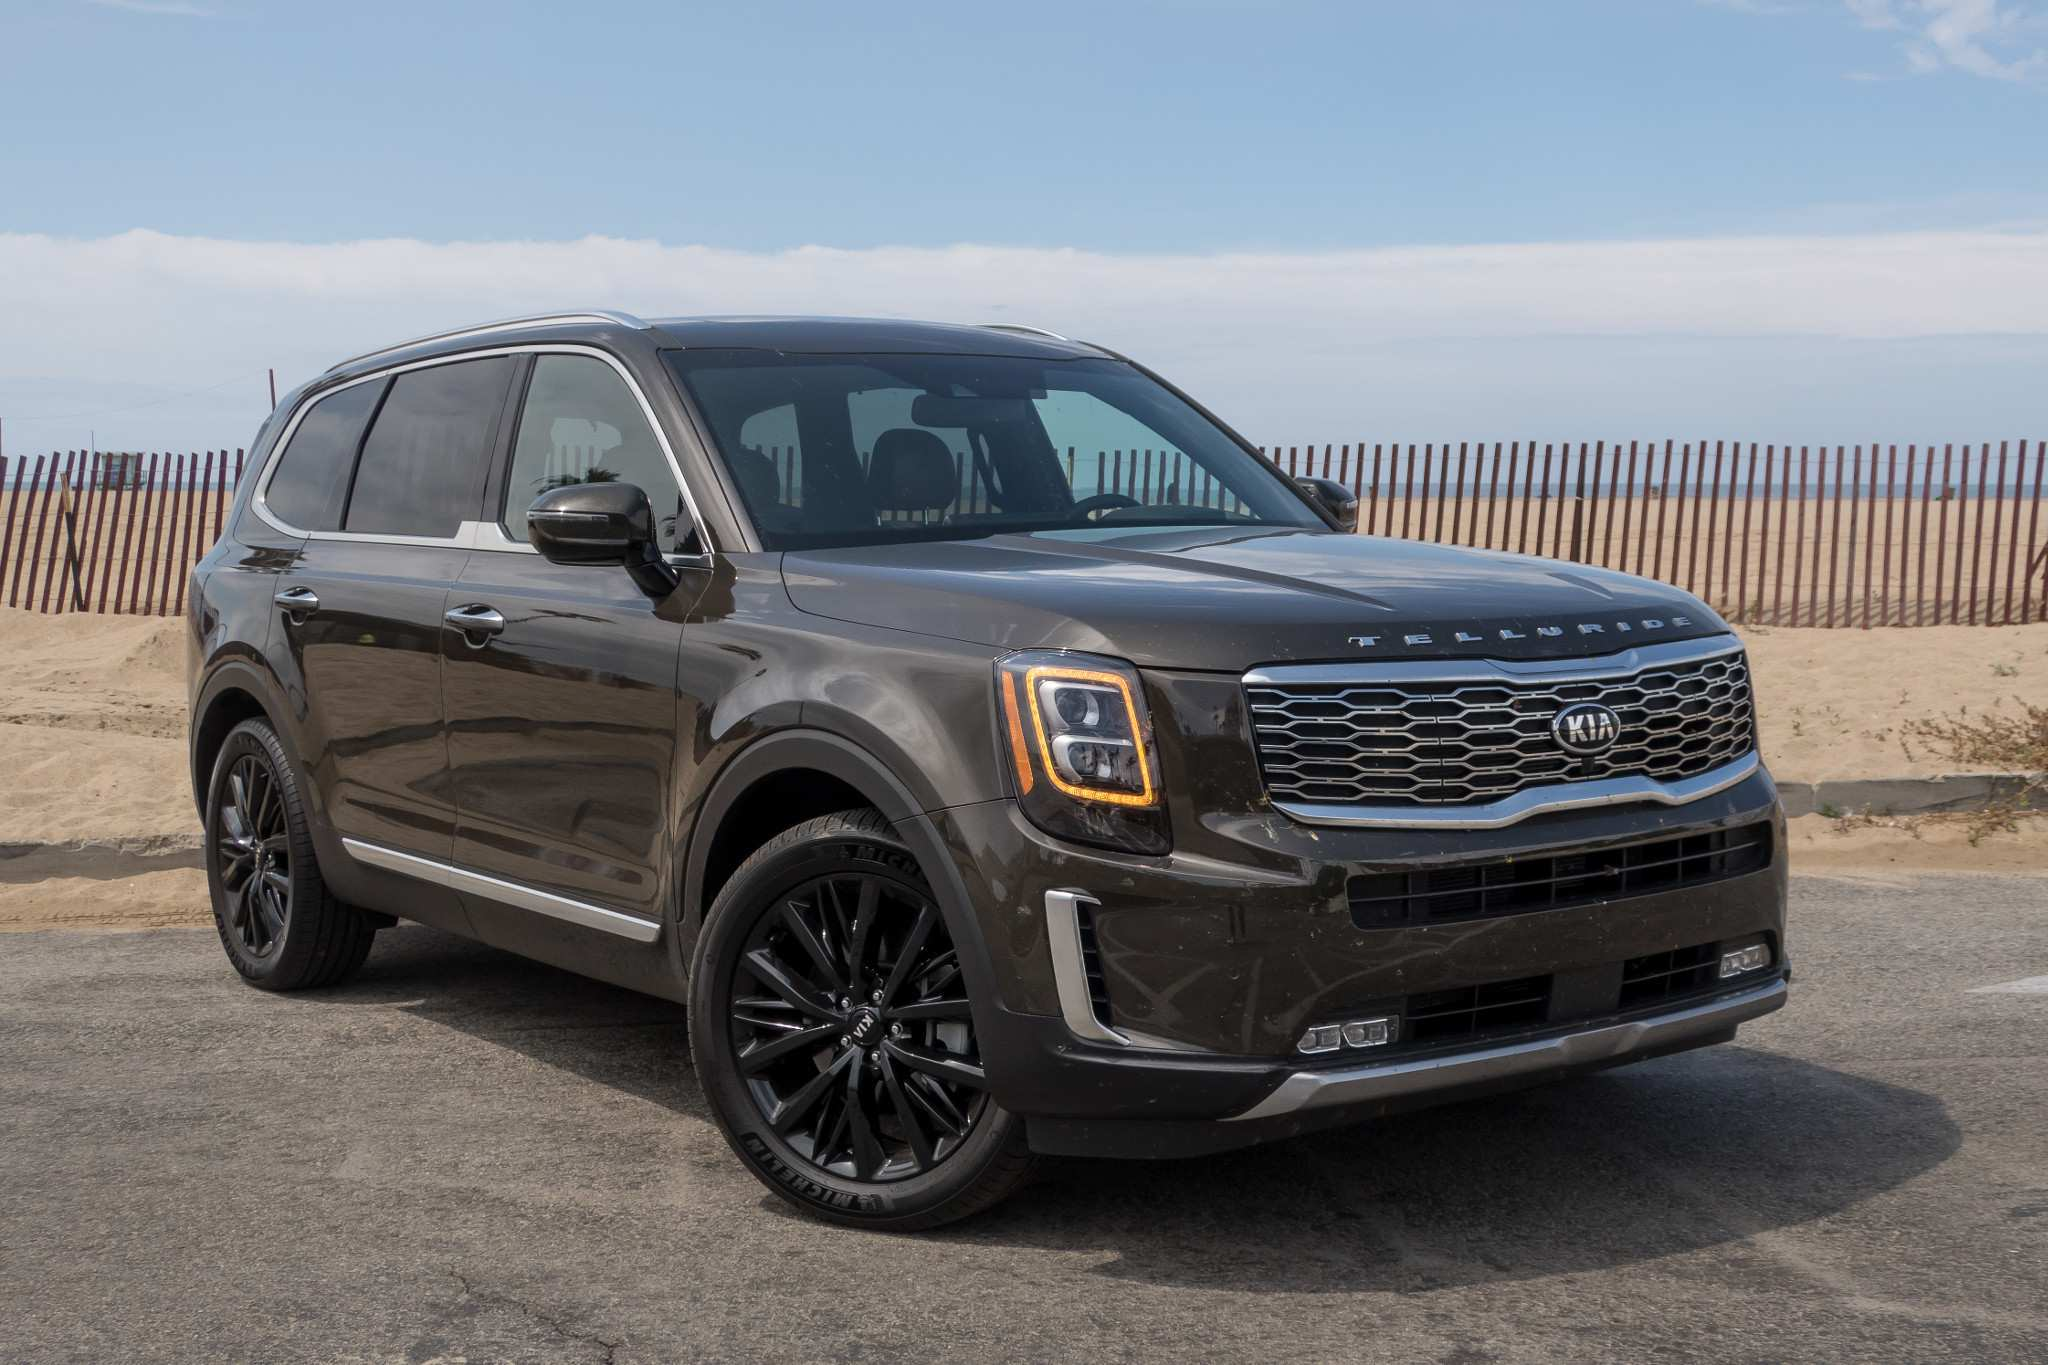 22 All New Kia Telluride 2020 For Sale 2 Price